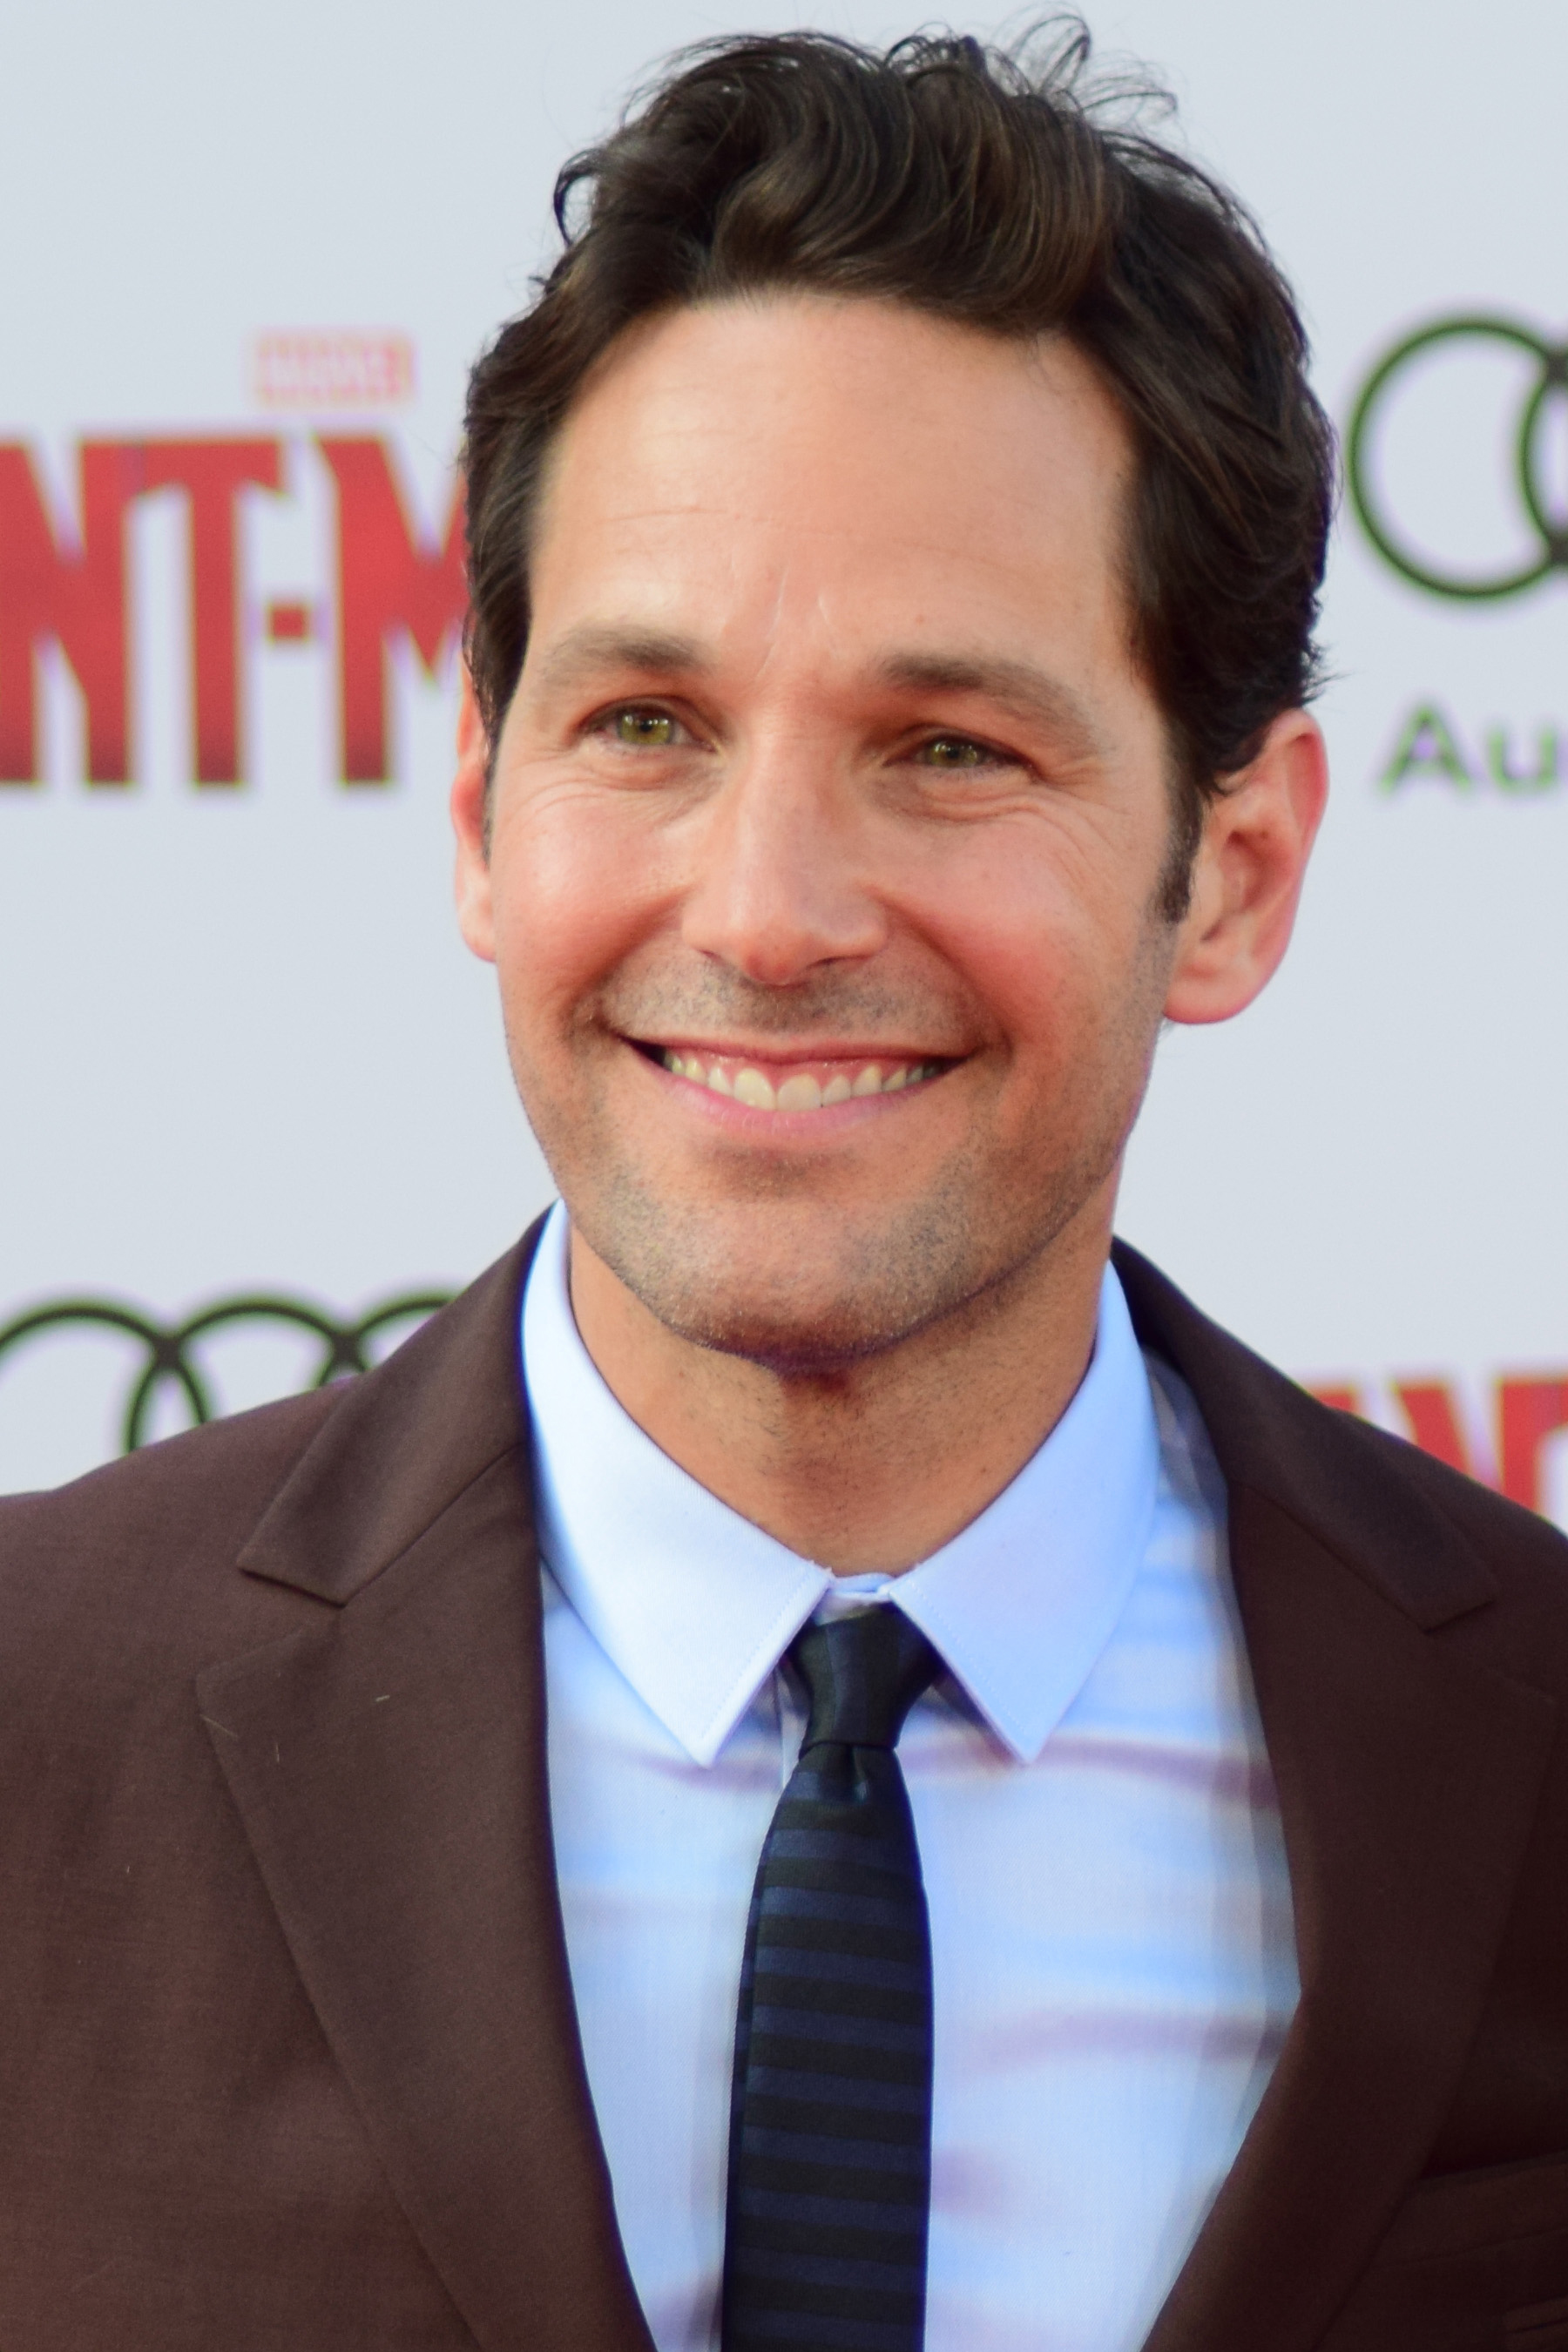 Paul Rudd during World Premiere of Ant-Man